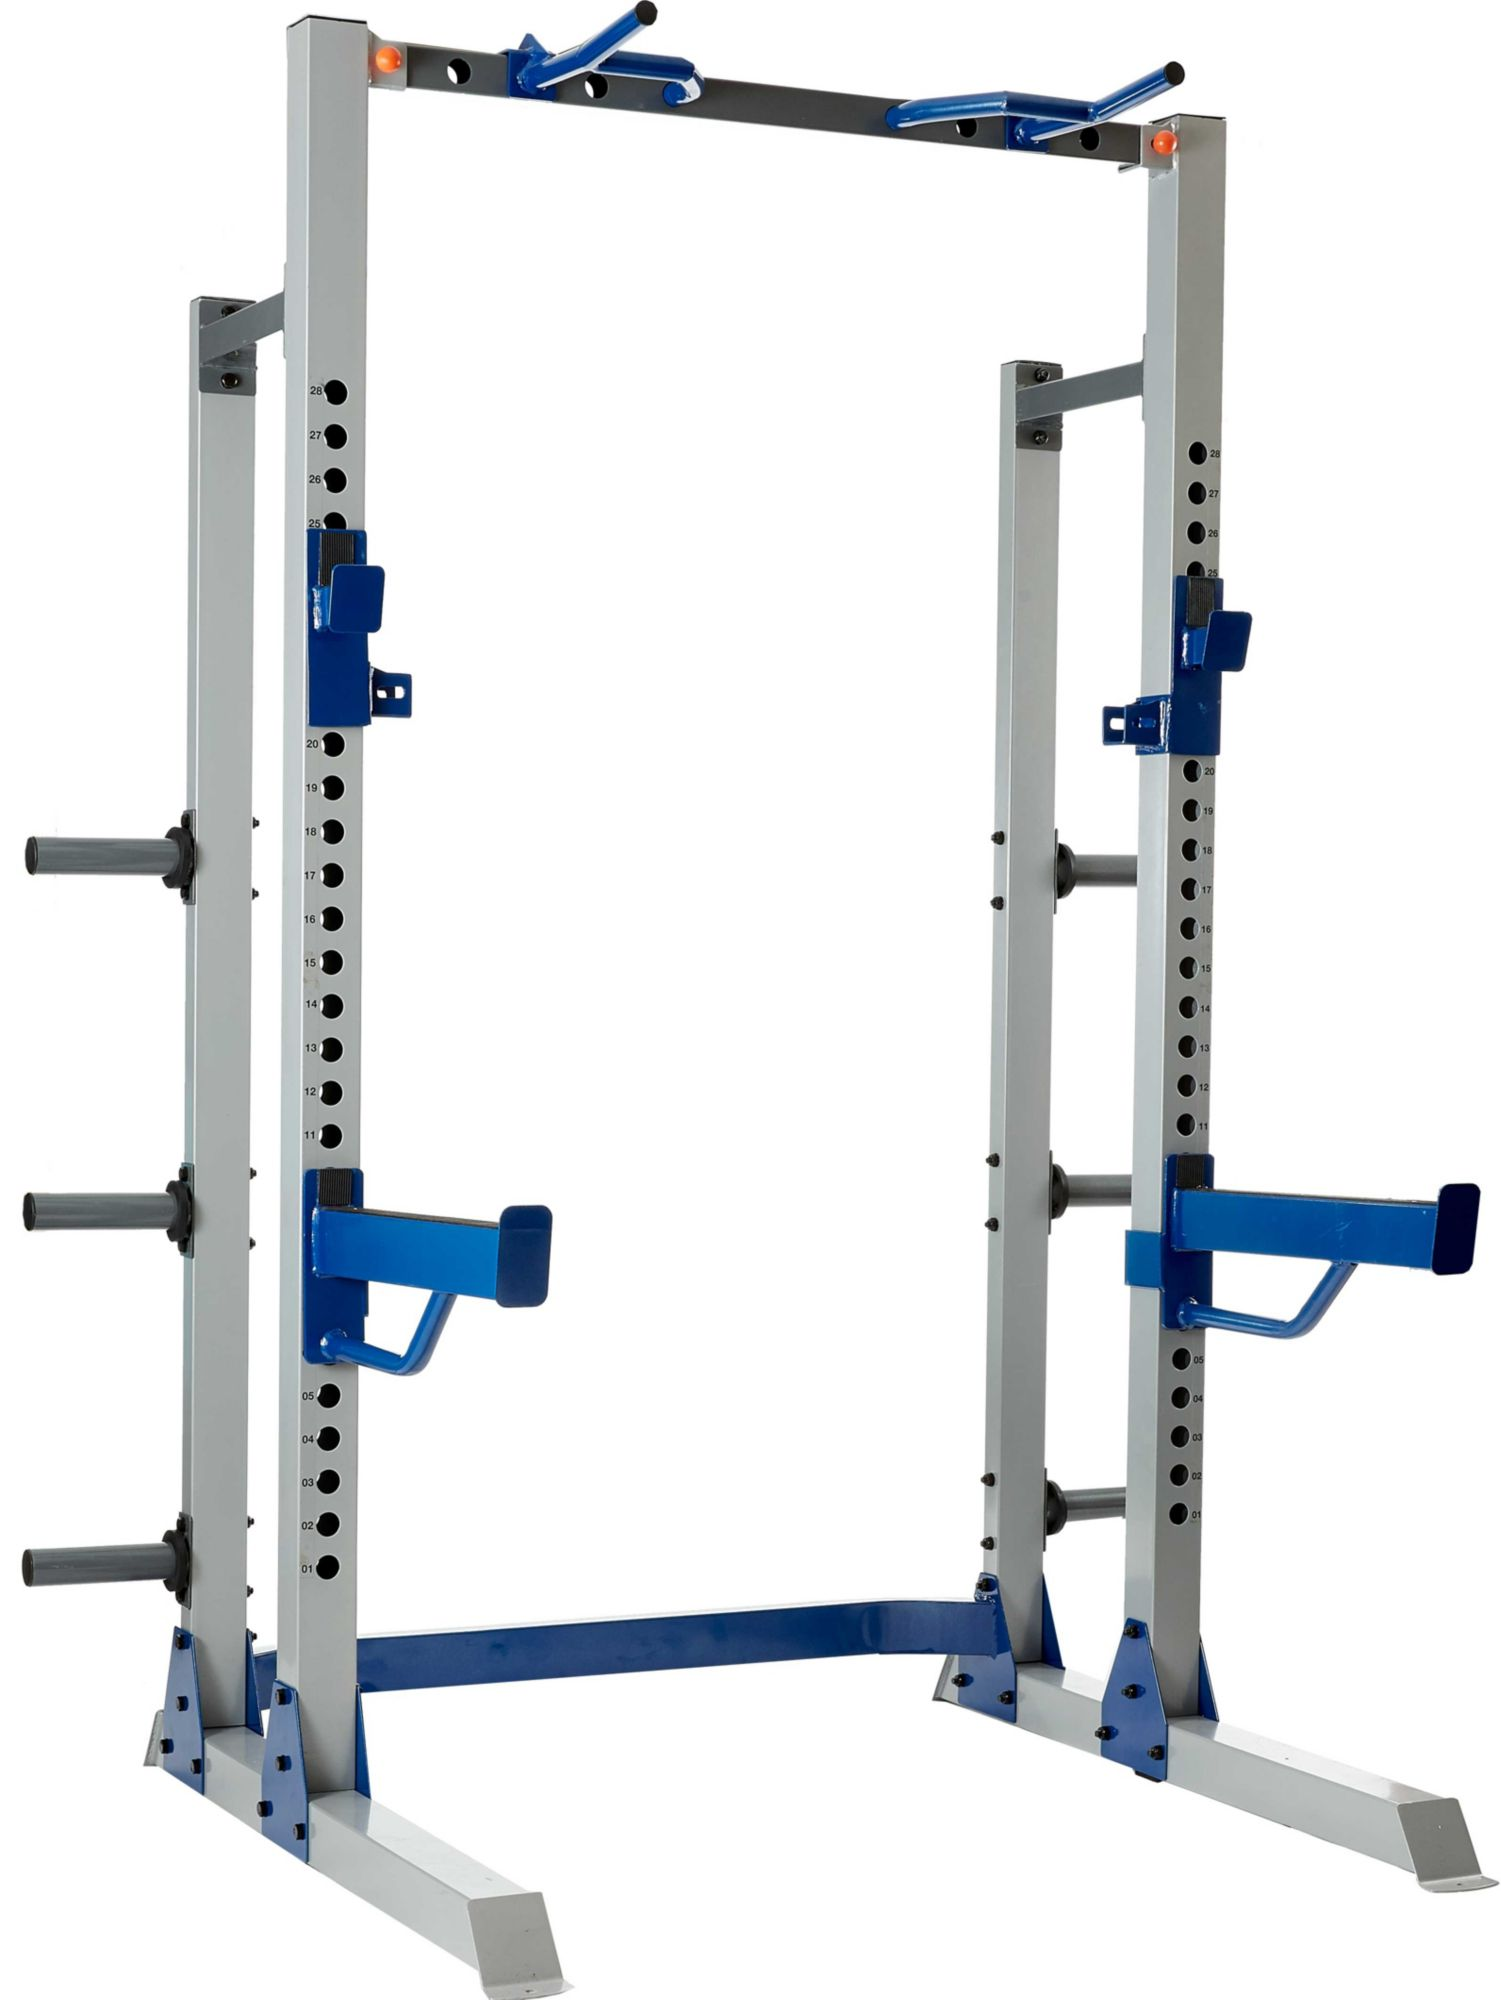 Fitness Gear Weight Bench Replacement Parts | Workout ...